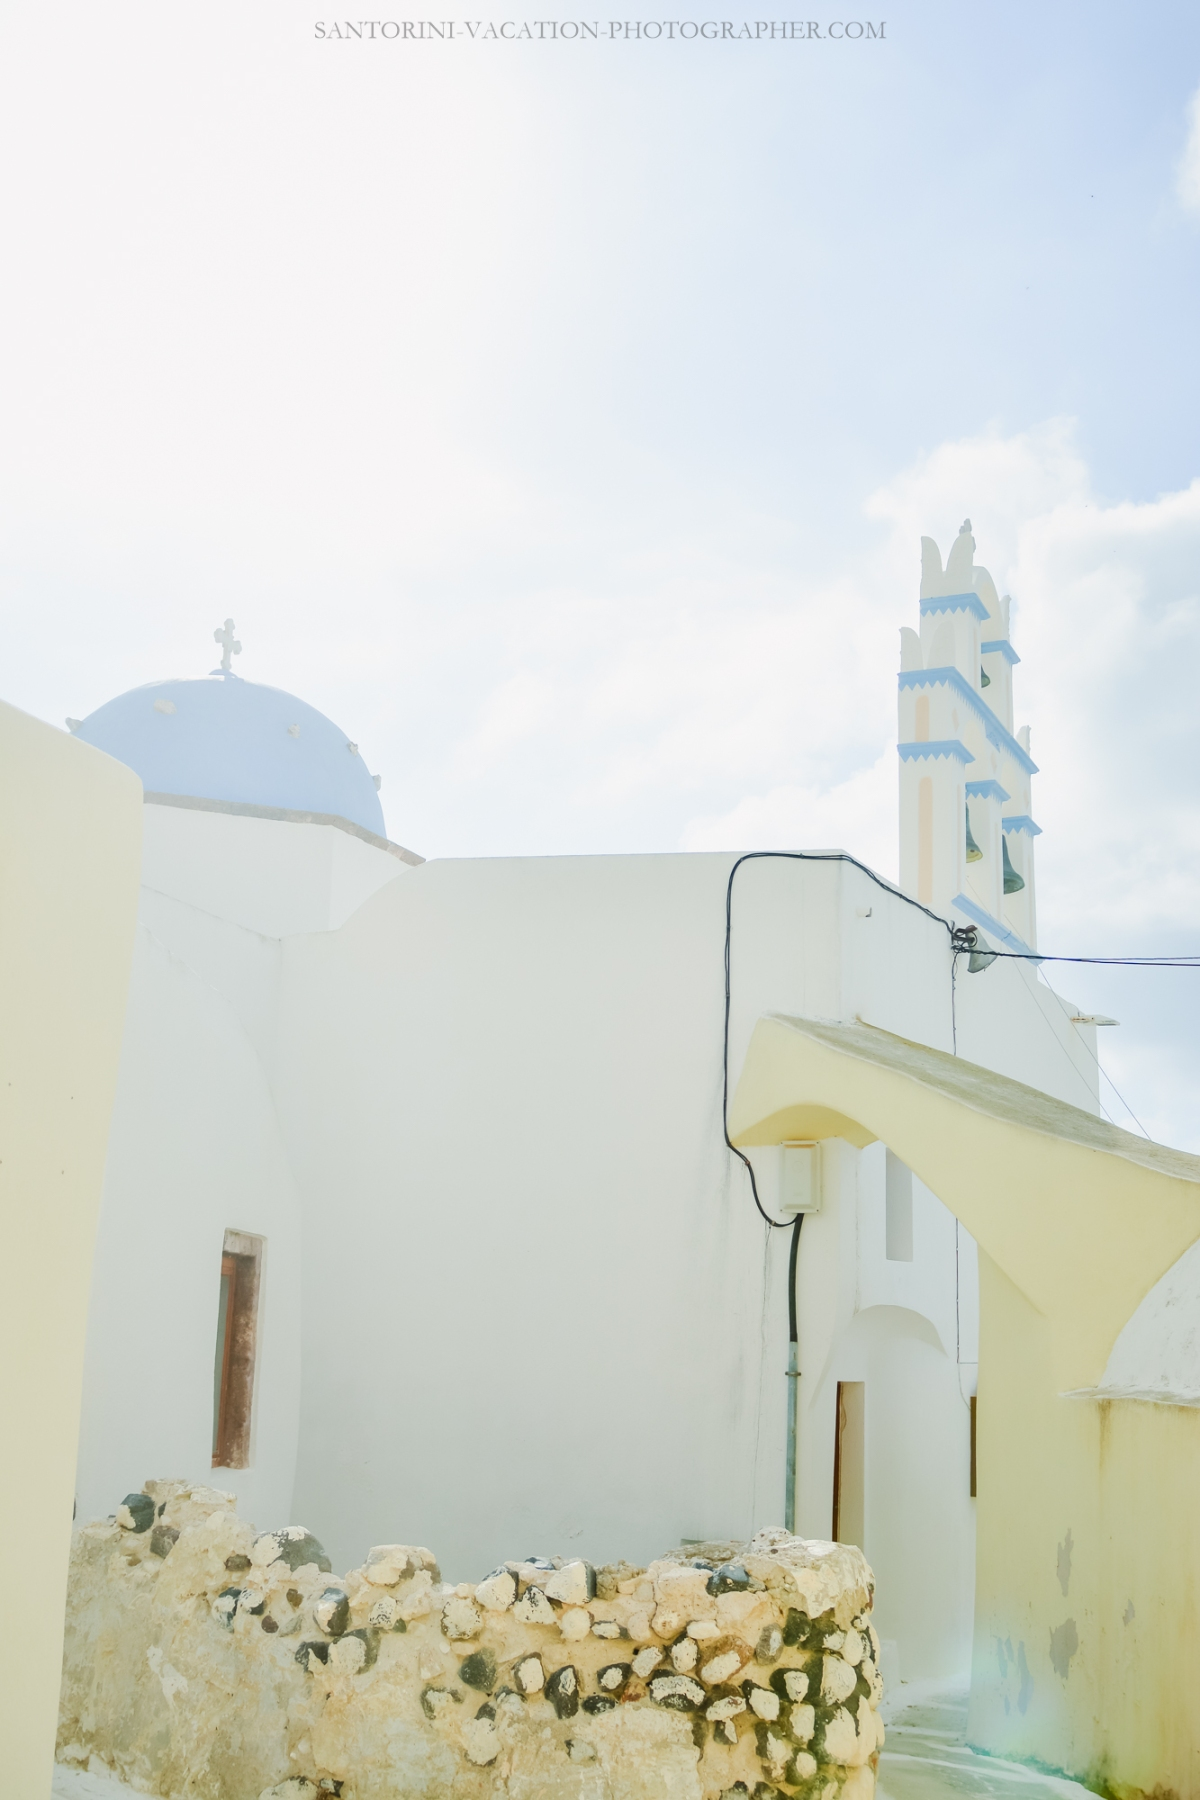 Thera-Santorini-destination-travel-lifestyle-location-spots-003